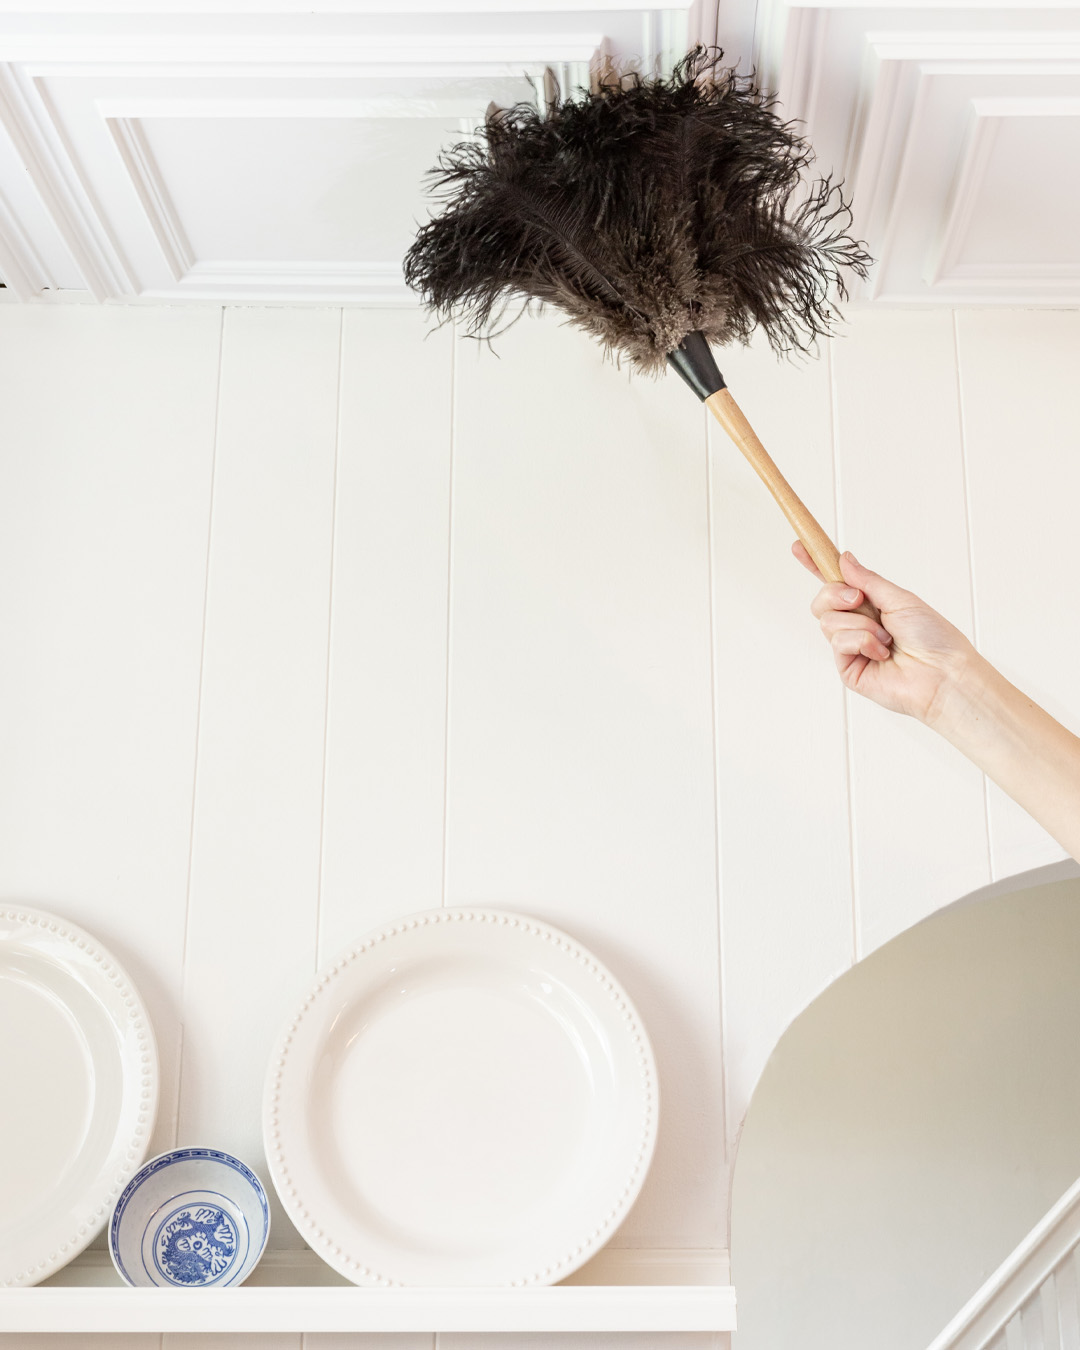 Use this list of what to clean in May as your simple guide to what jobs need to be tackled this month around the house.